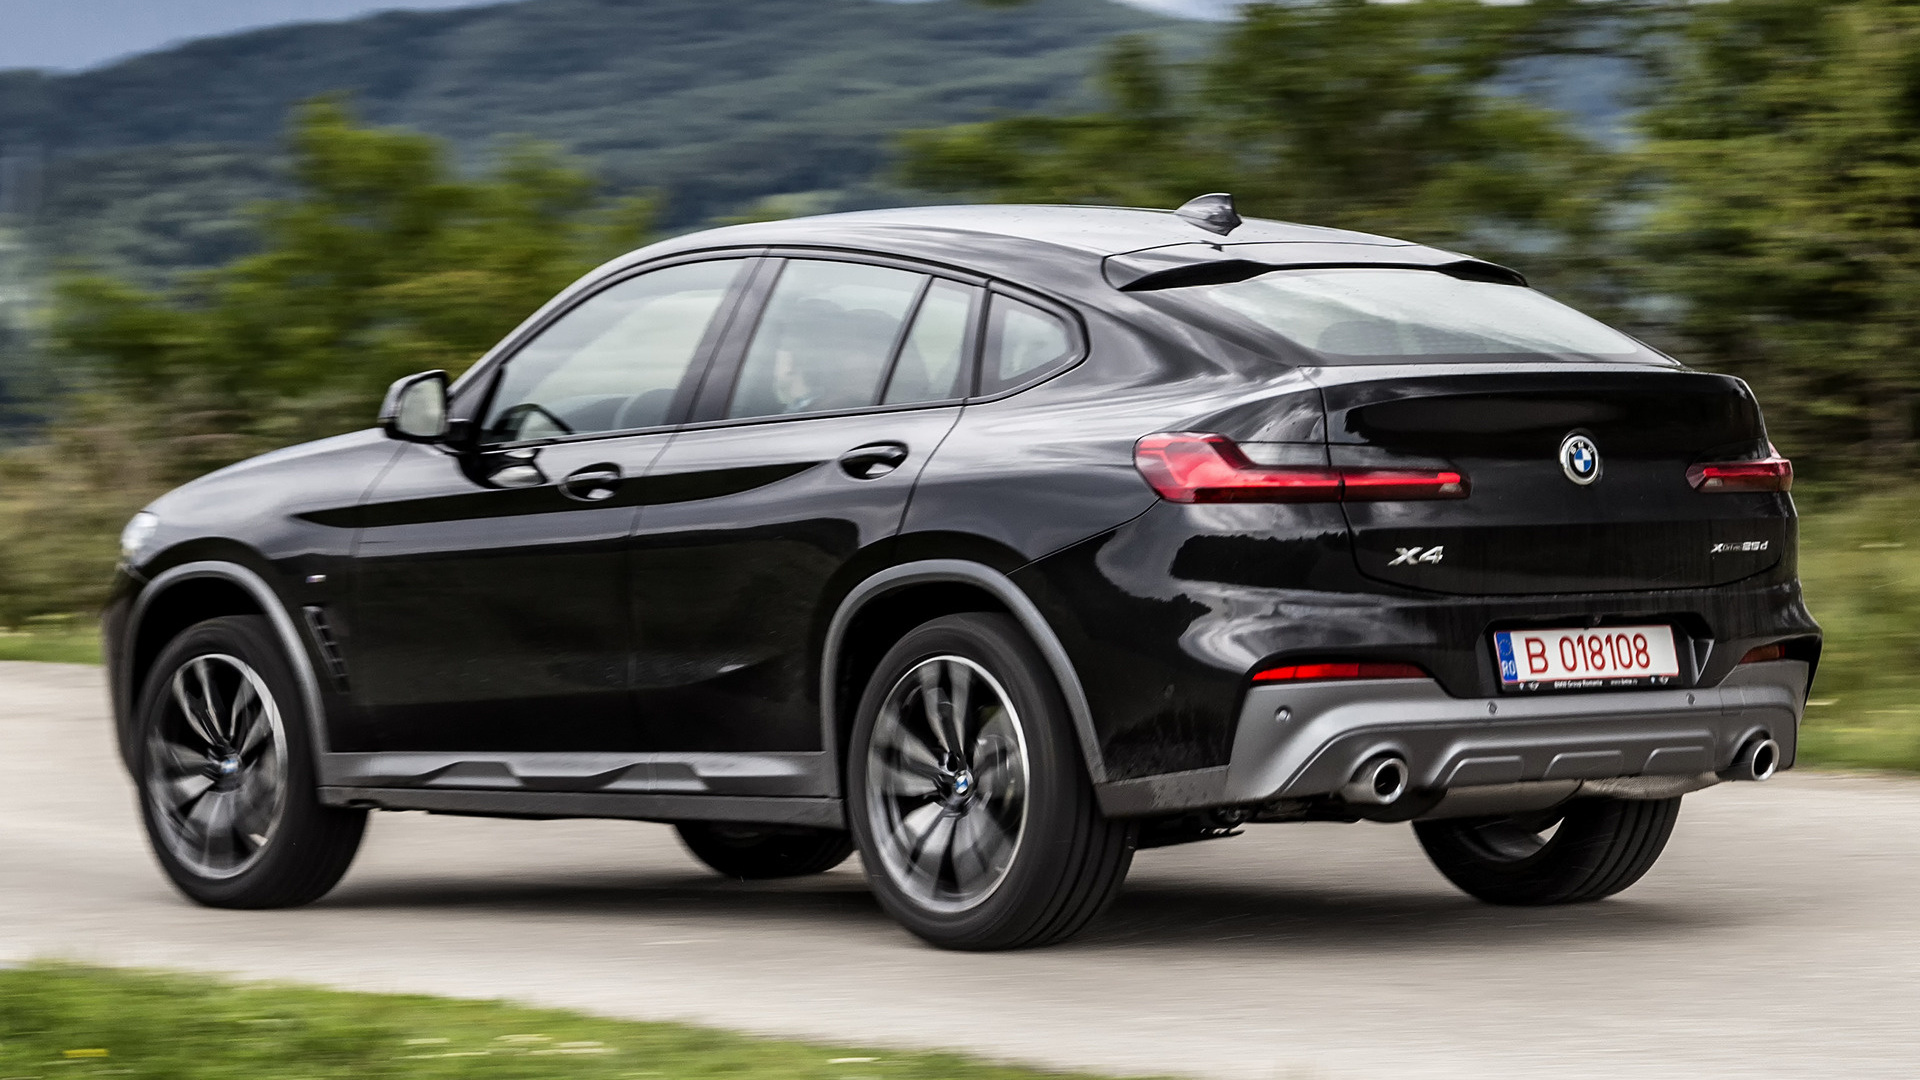 2018 bmw x4 m sport x wallpapers and hd images car pixel. Black Bedroom Furniture Sets. Home Design Ideas